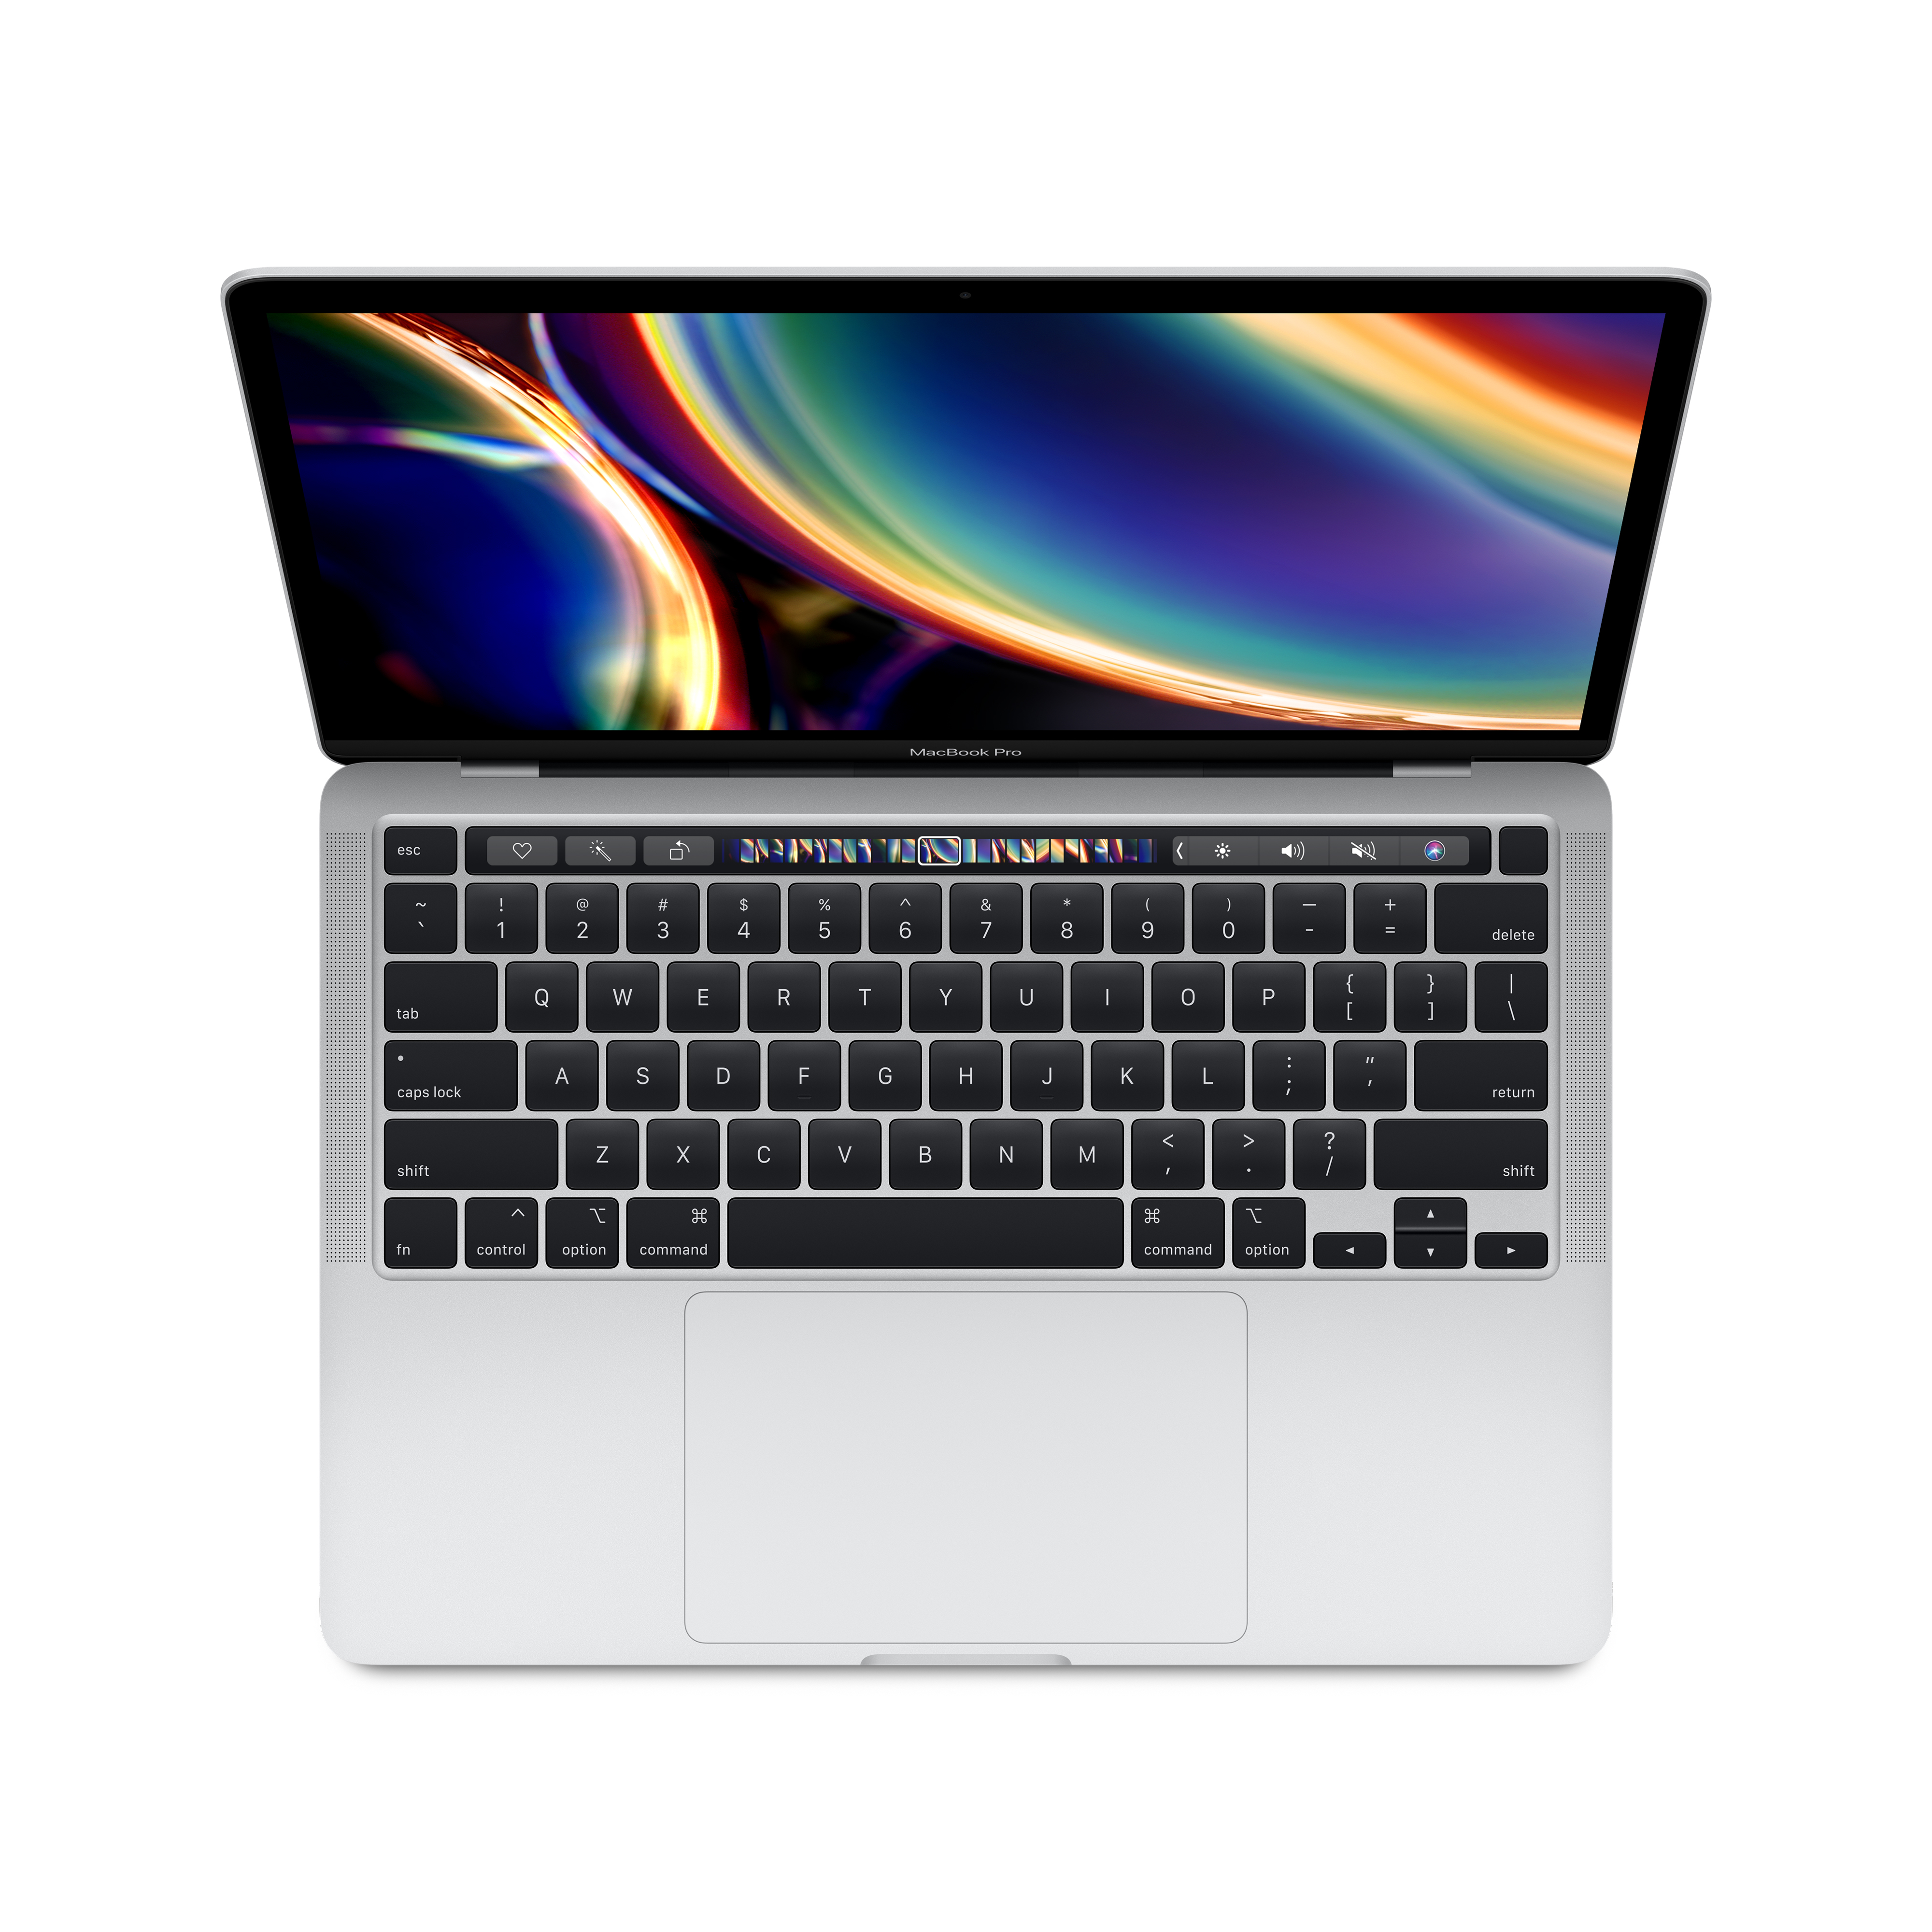 MacBook_Pro_13in_2ports_silver_PDP_US_36.53.53PM